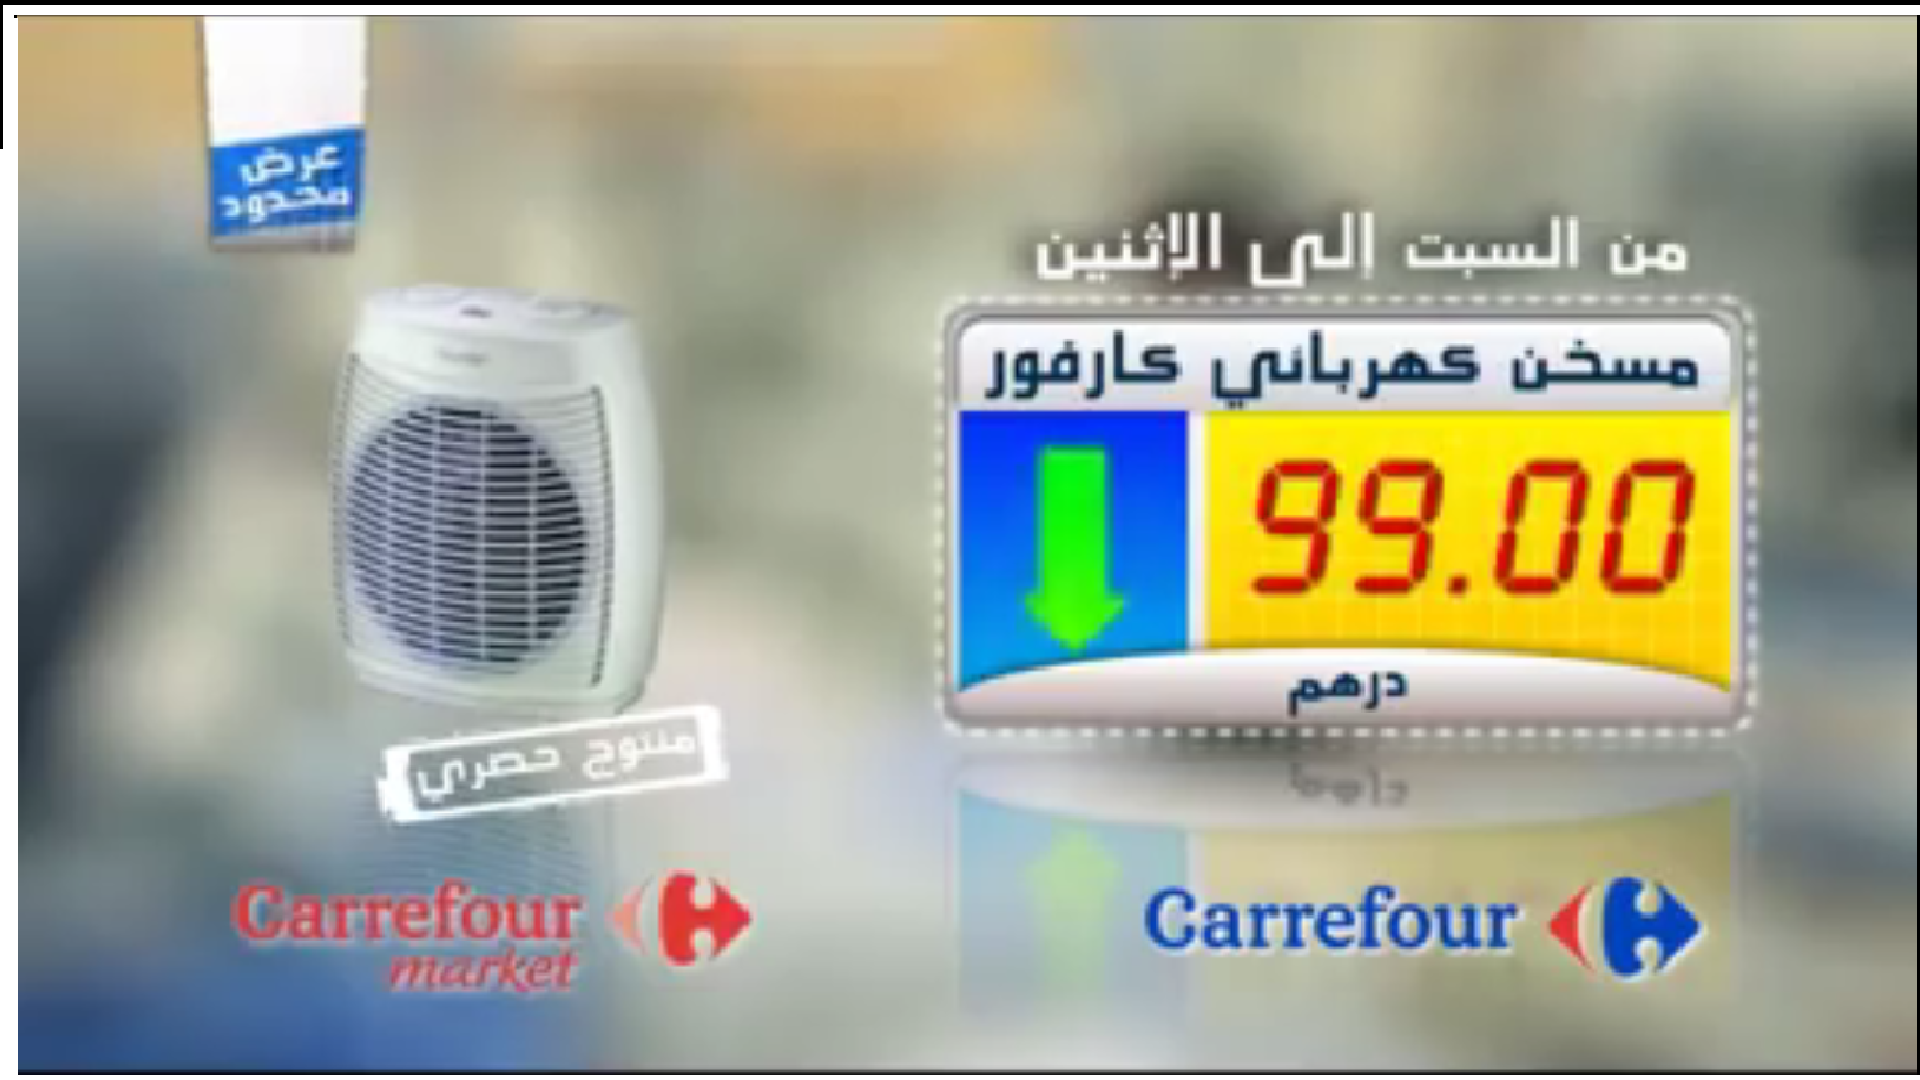 super promotion carrefour et carrefour market du samedi 26 12 au lundi 28 12 promotion au maroc. Black Bedroom Furniture Sets. Home Design Ideas